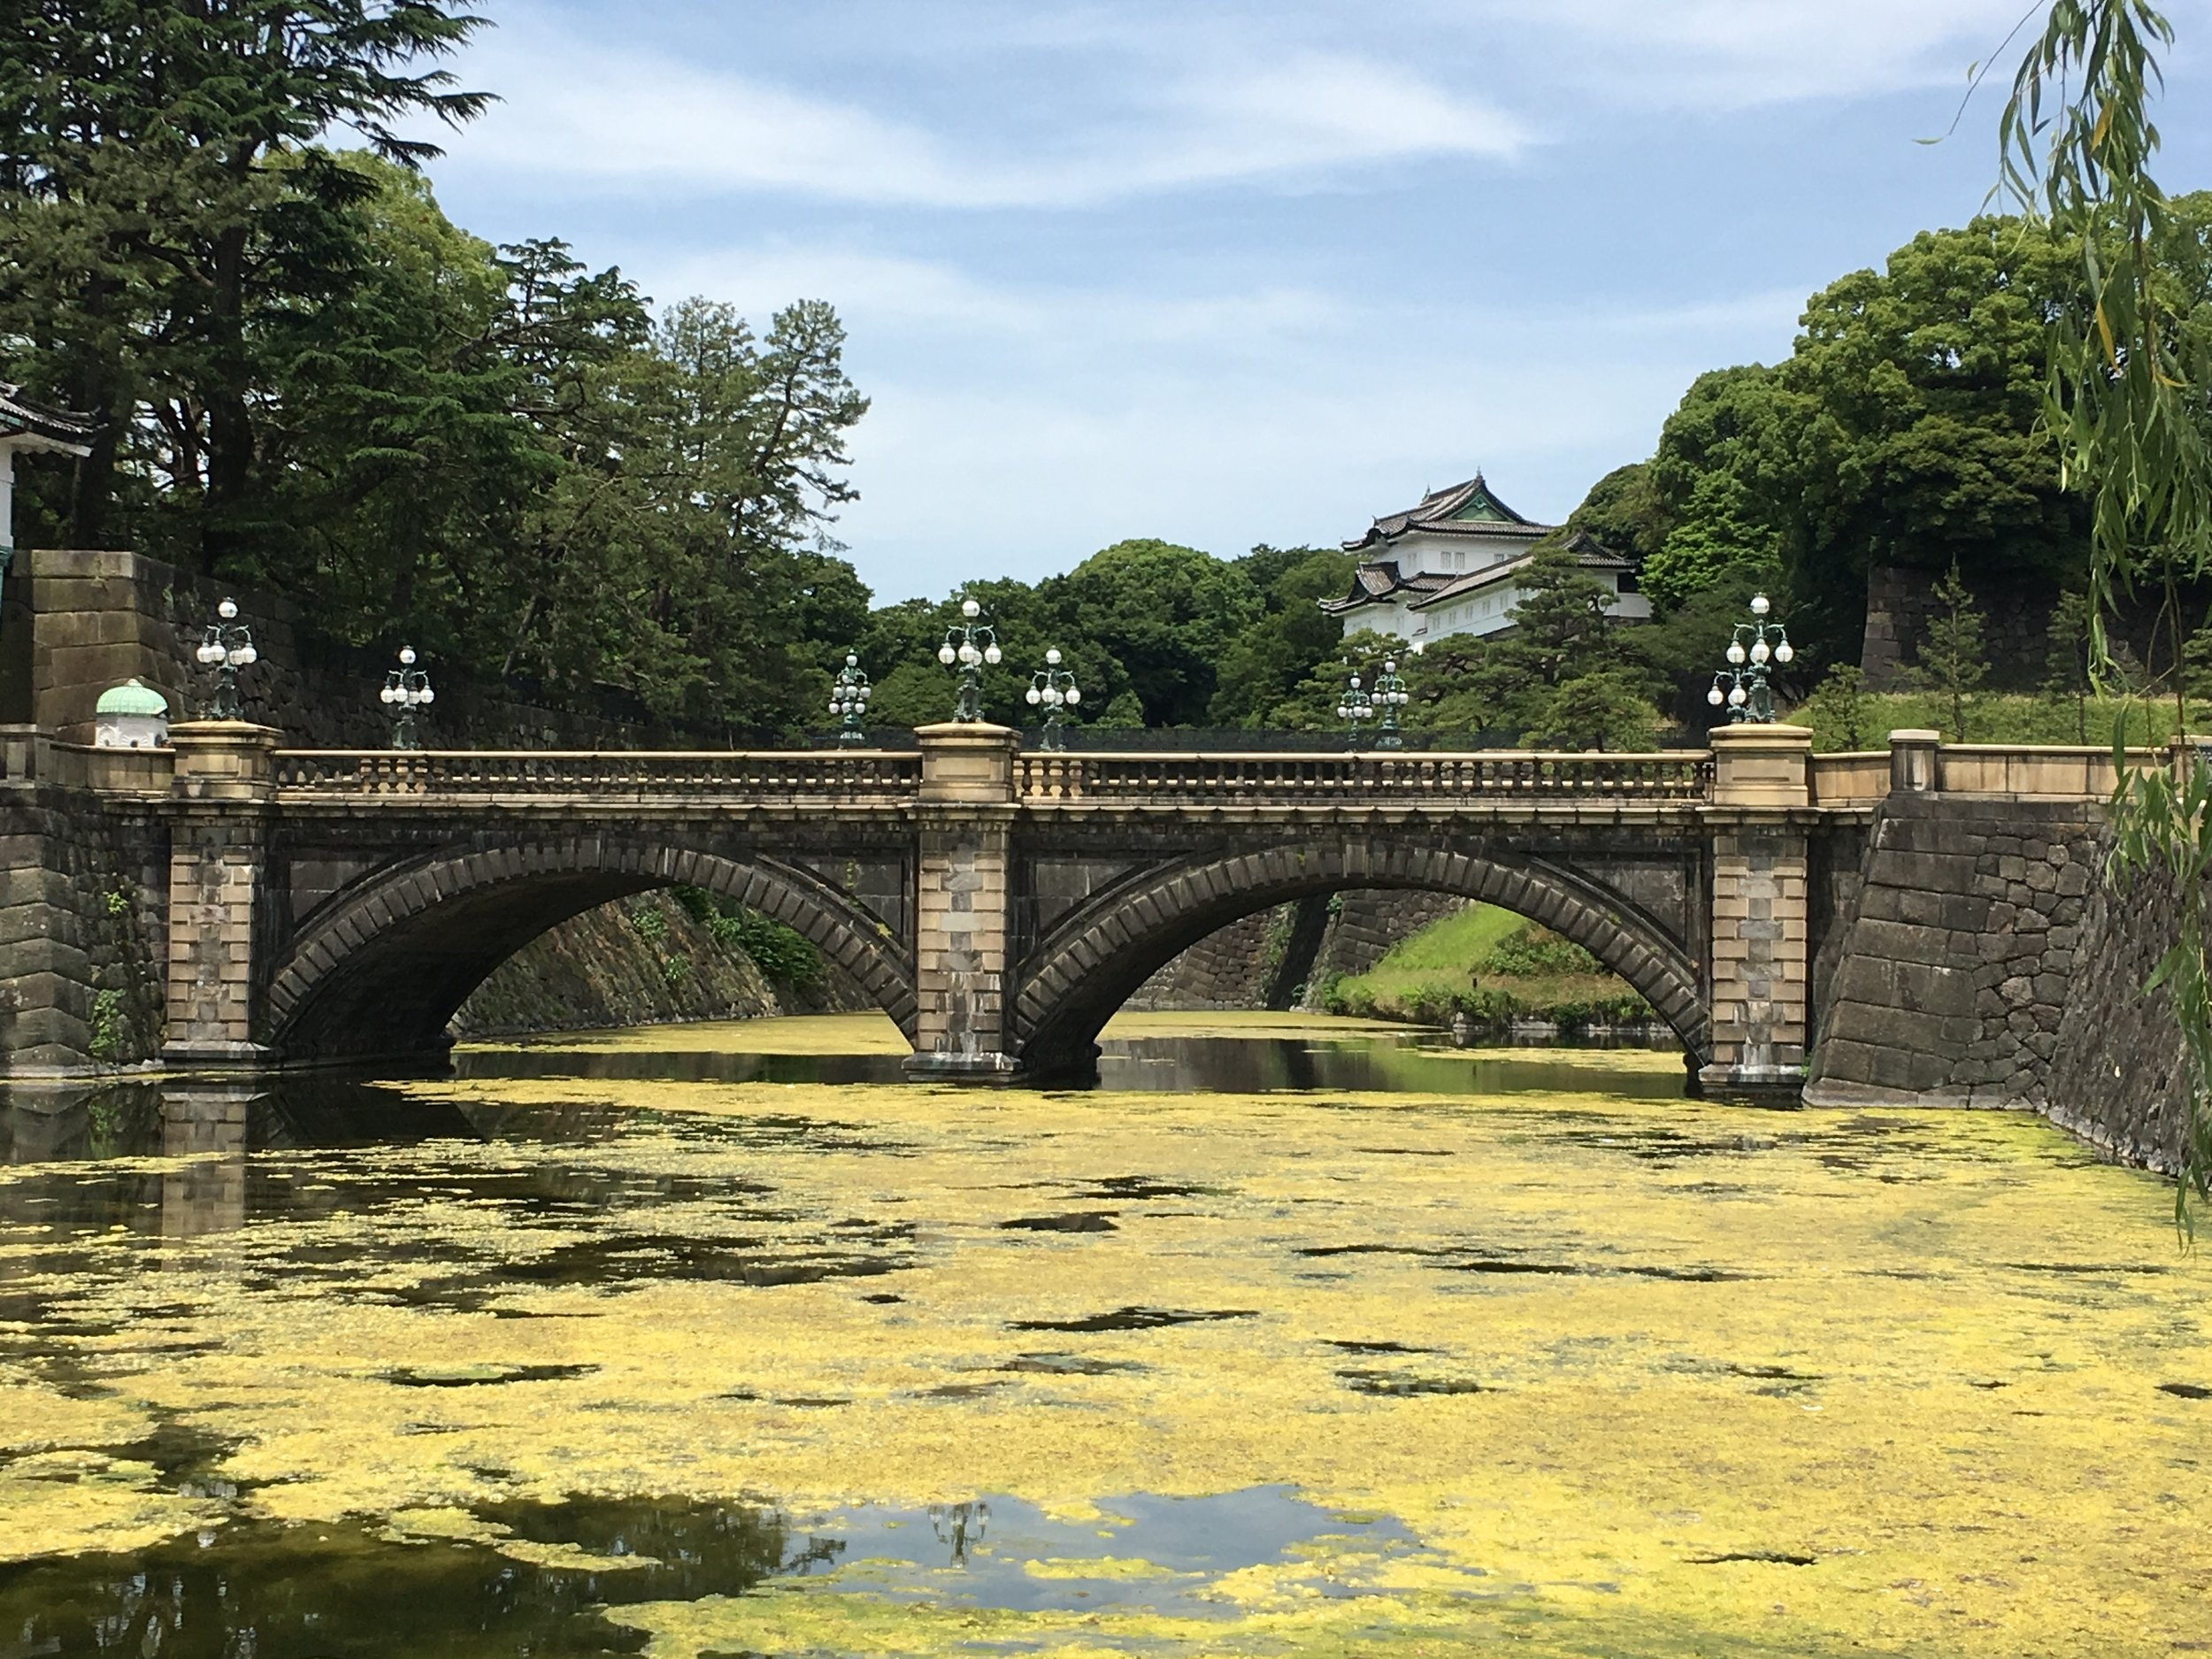 View of the Meganebashi bridge at the Imperial Palace grounds